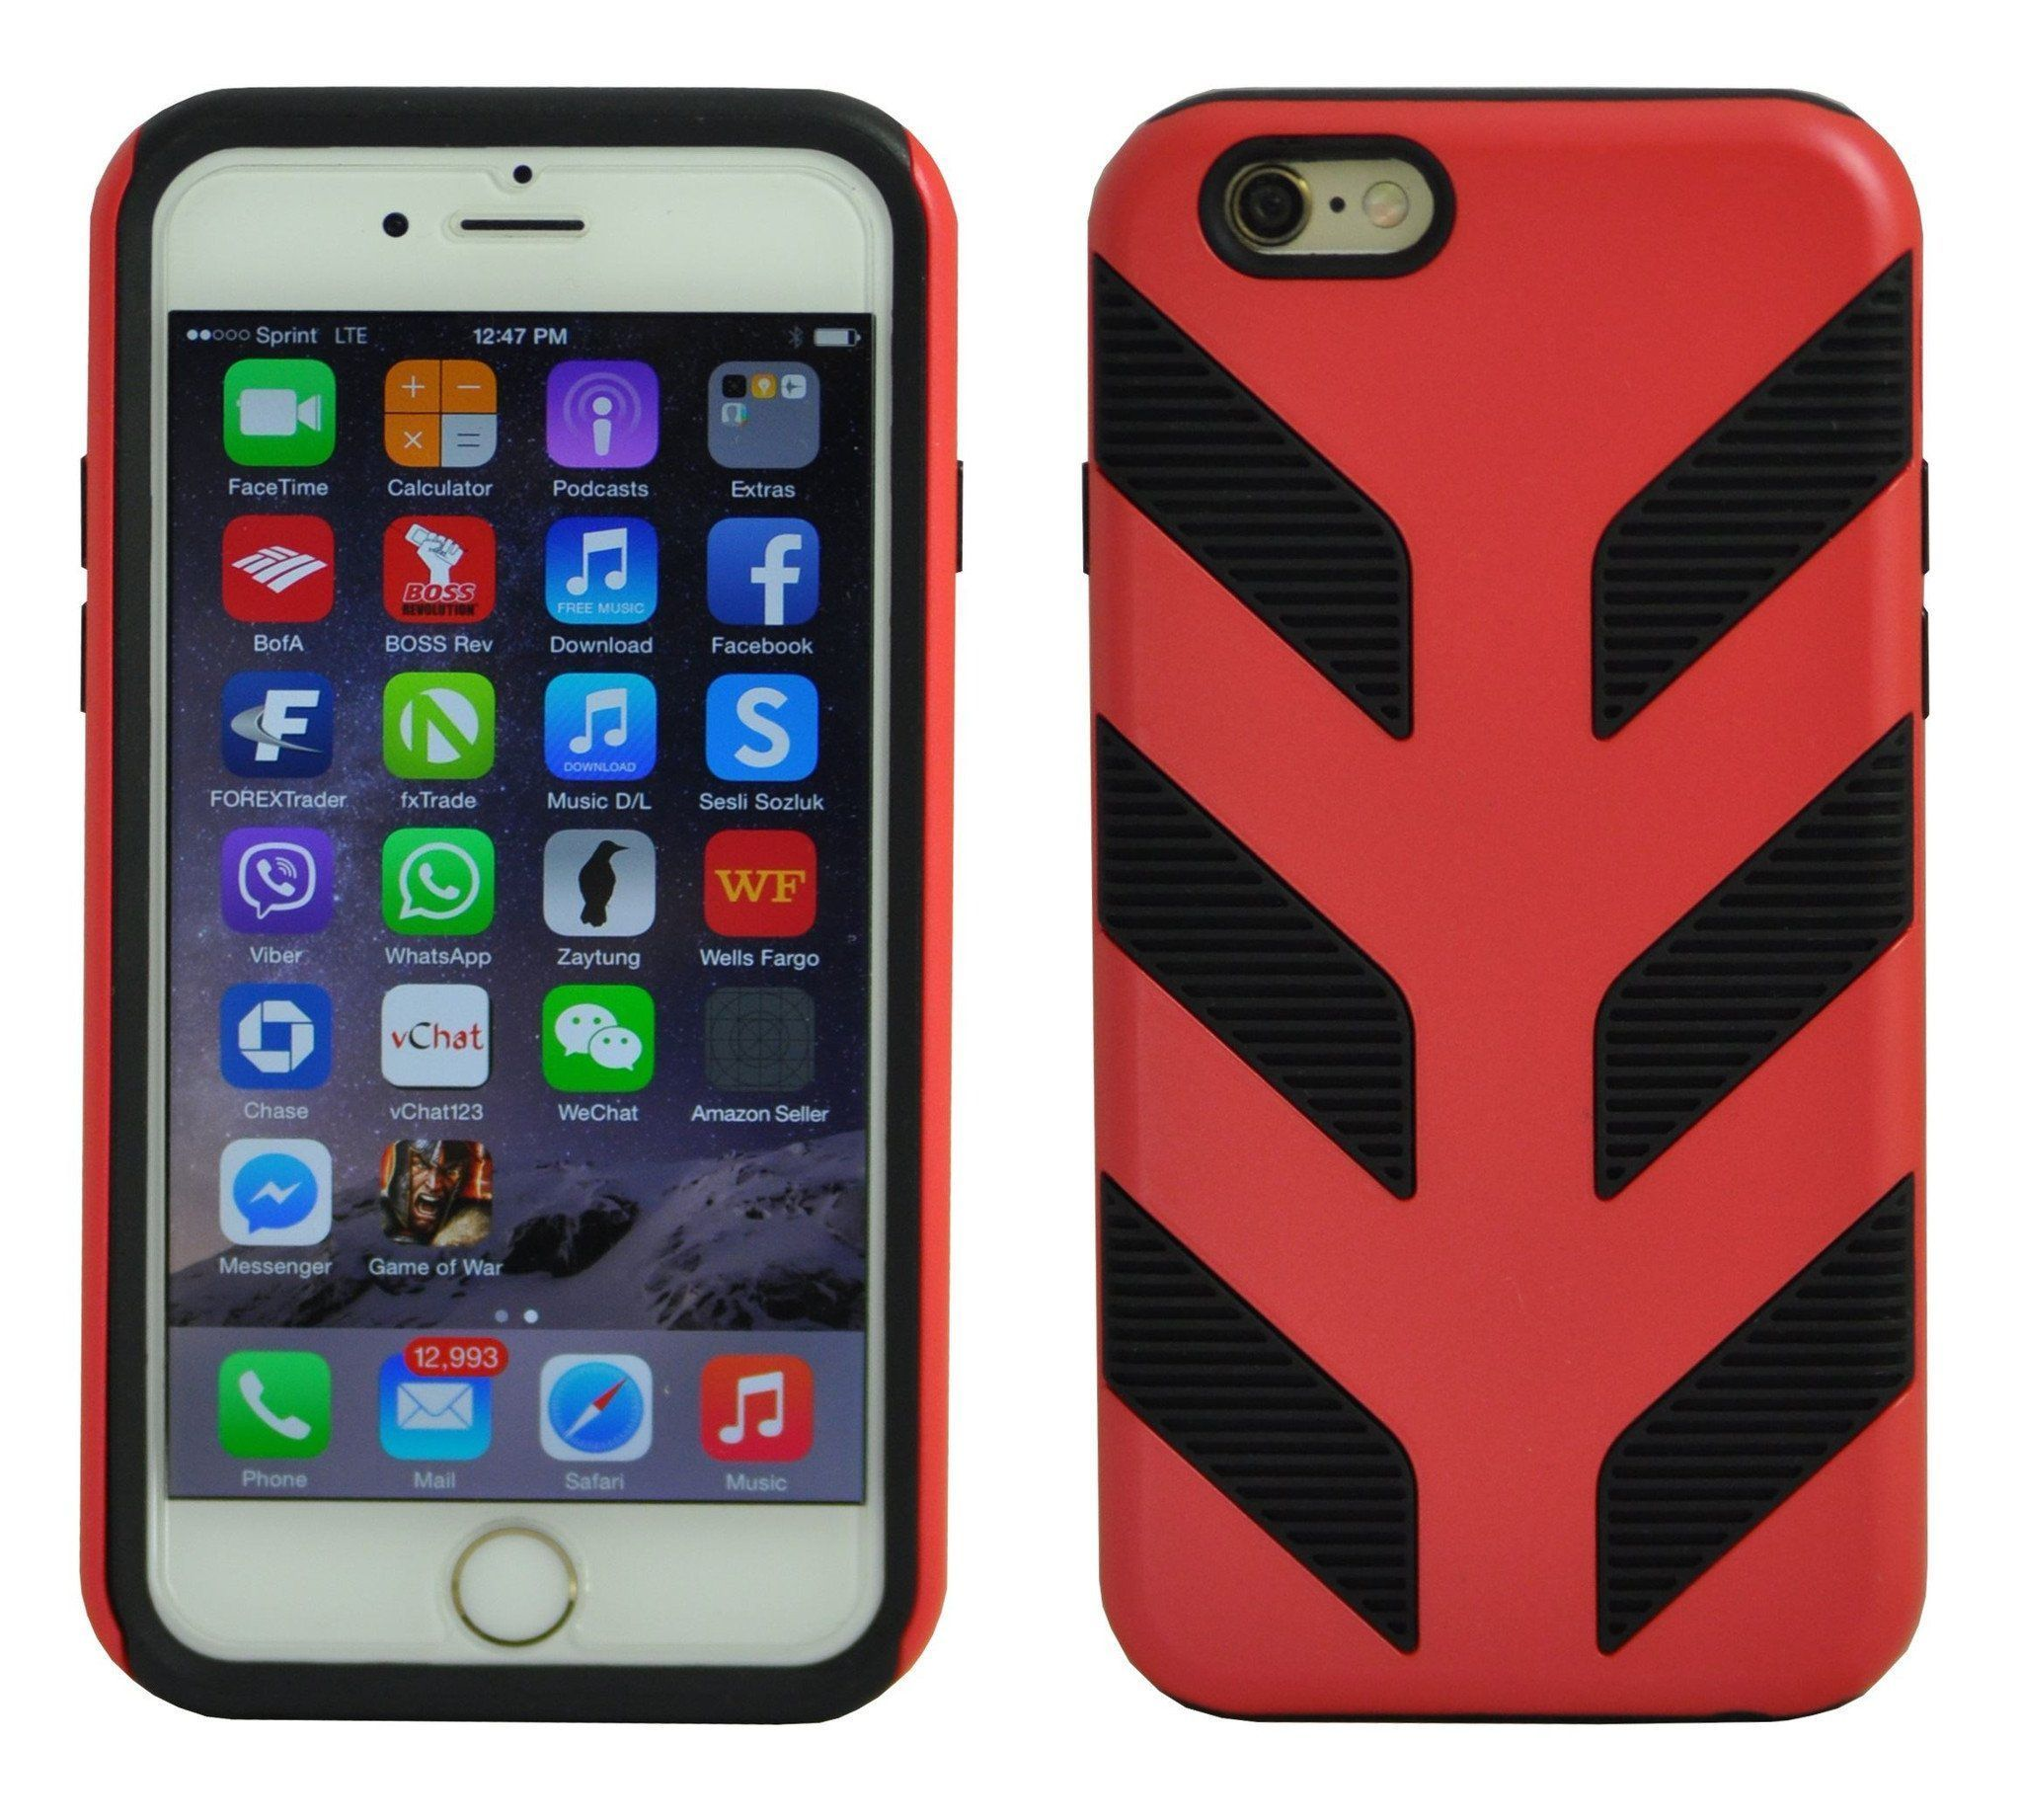 Pirella Case for iPhone 6 Plus - Red